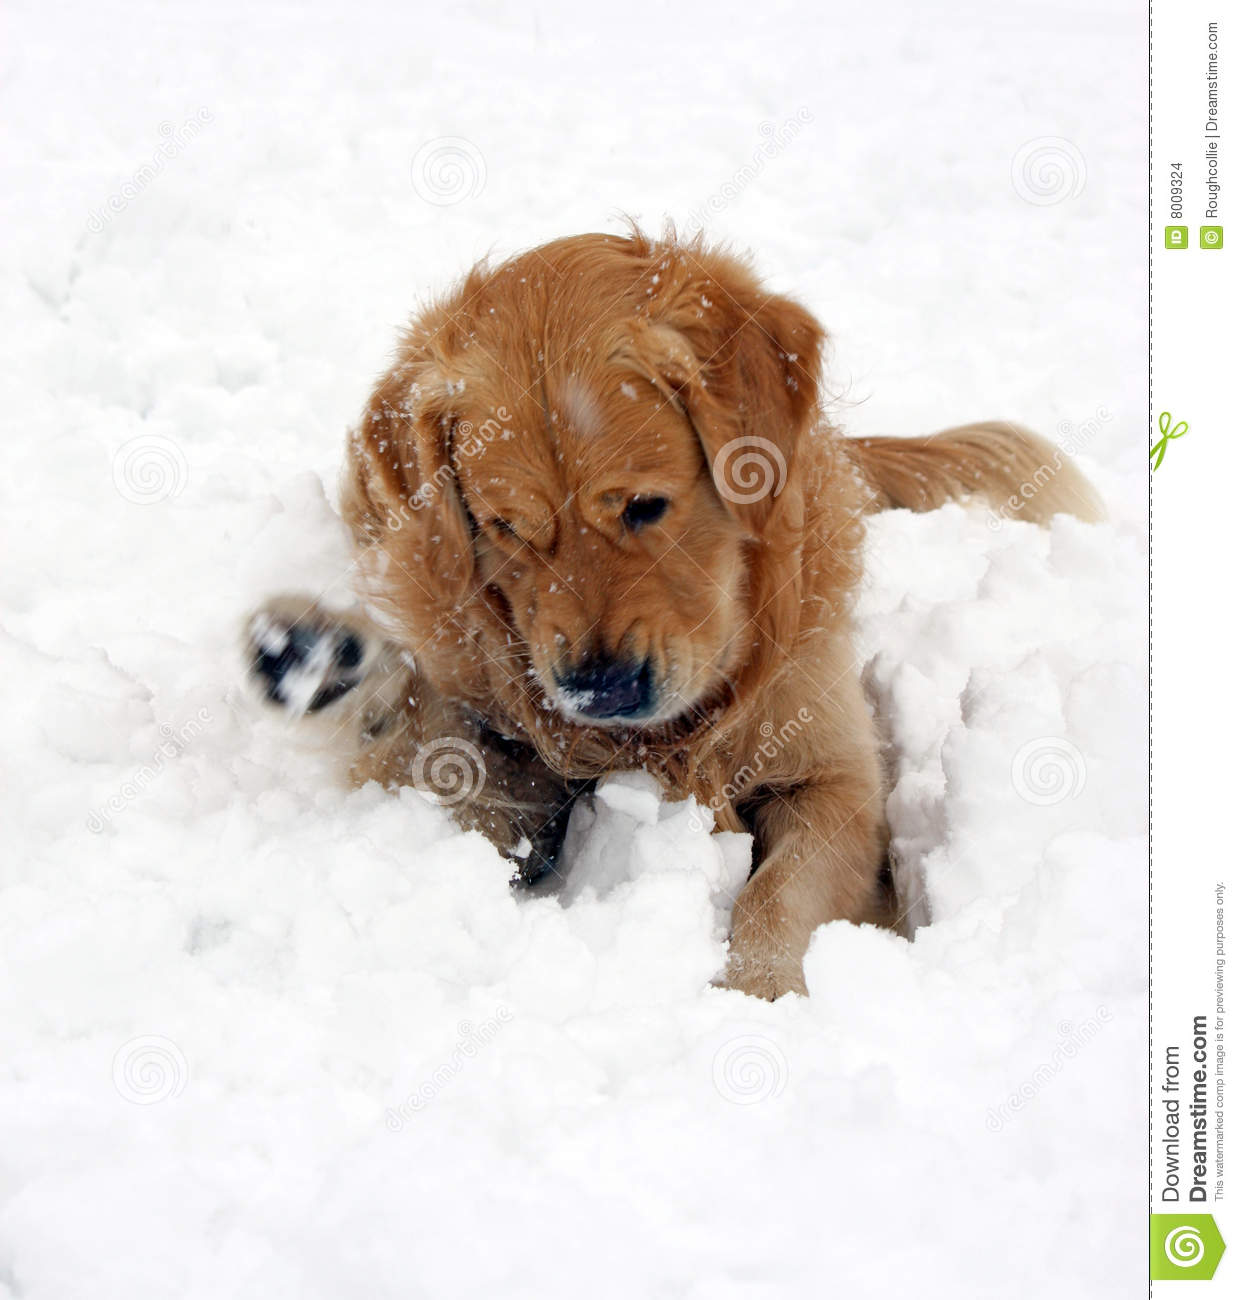 Dog In Snow Playing Stock Images - Image: 8009324